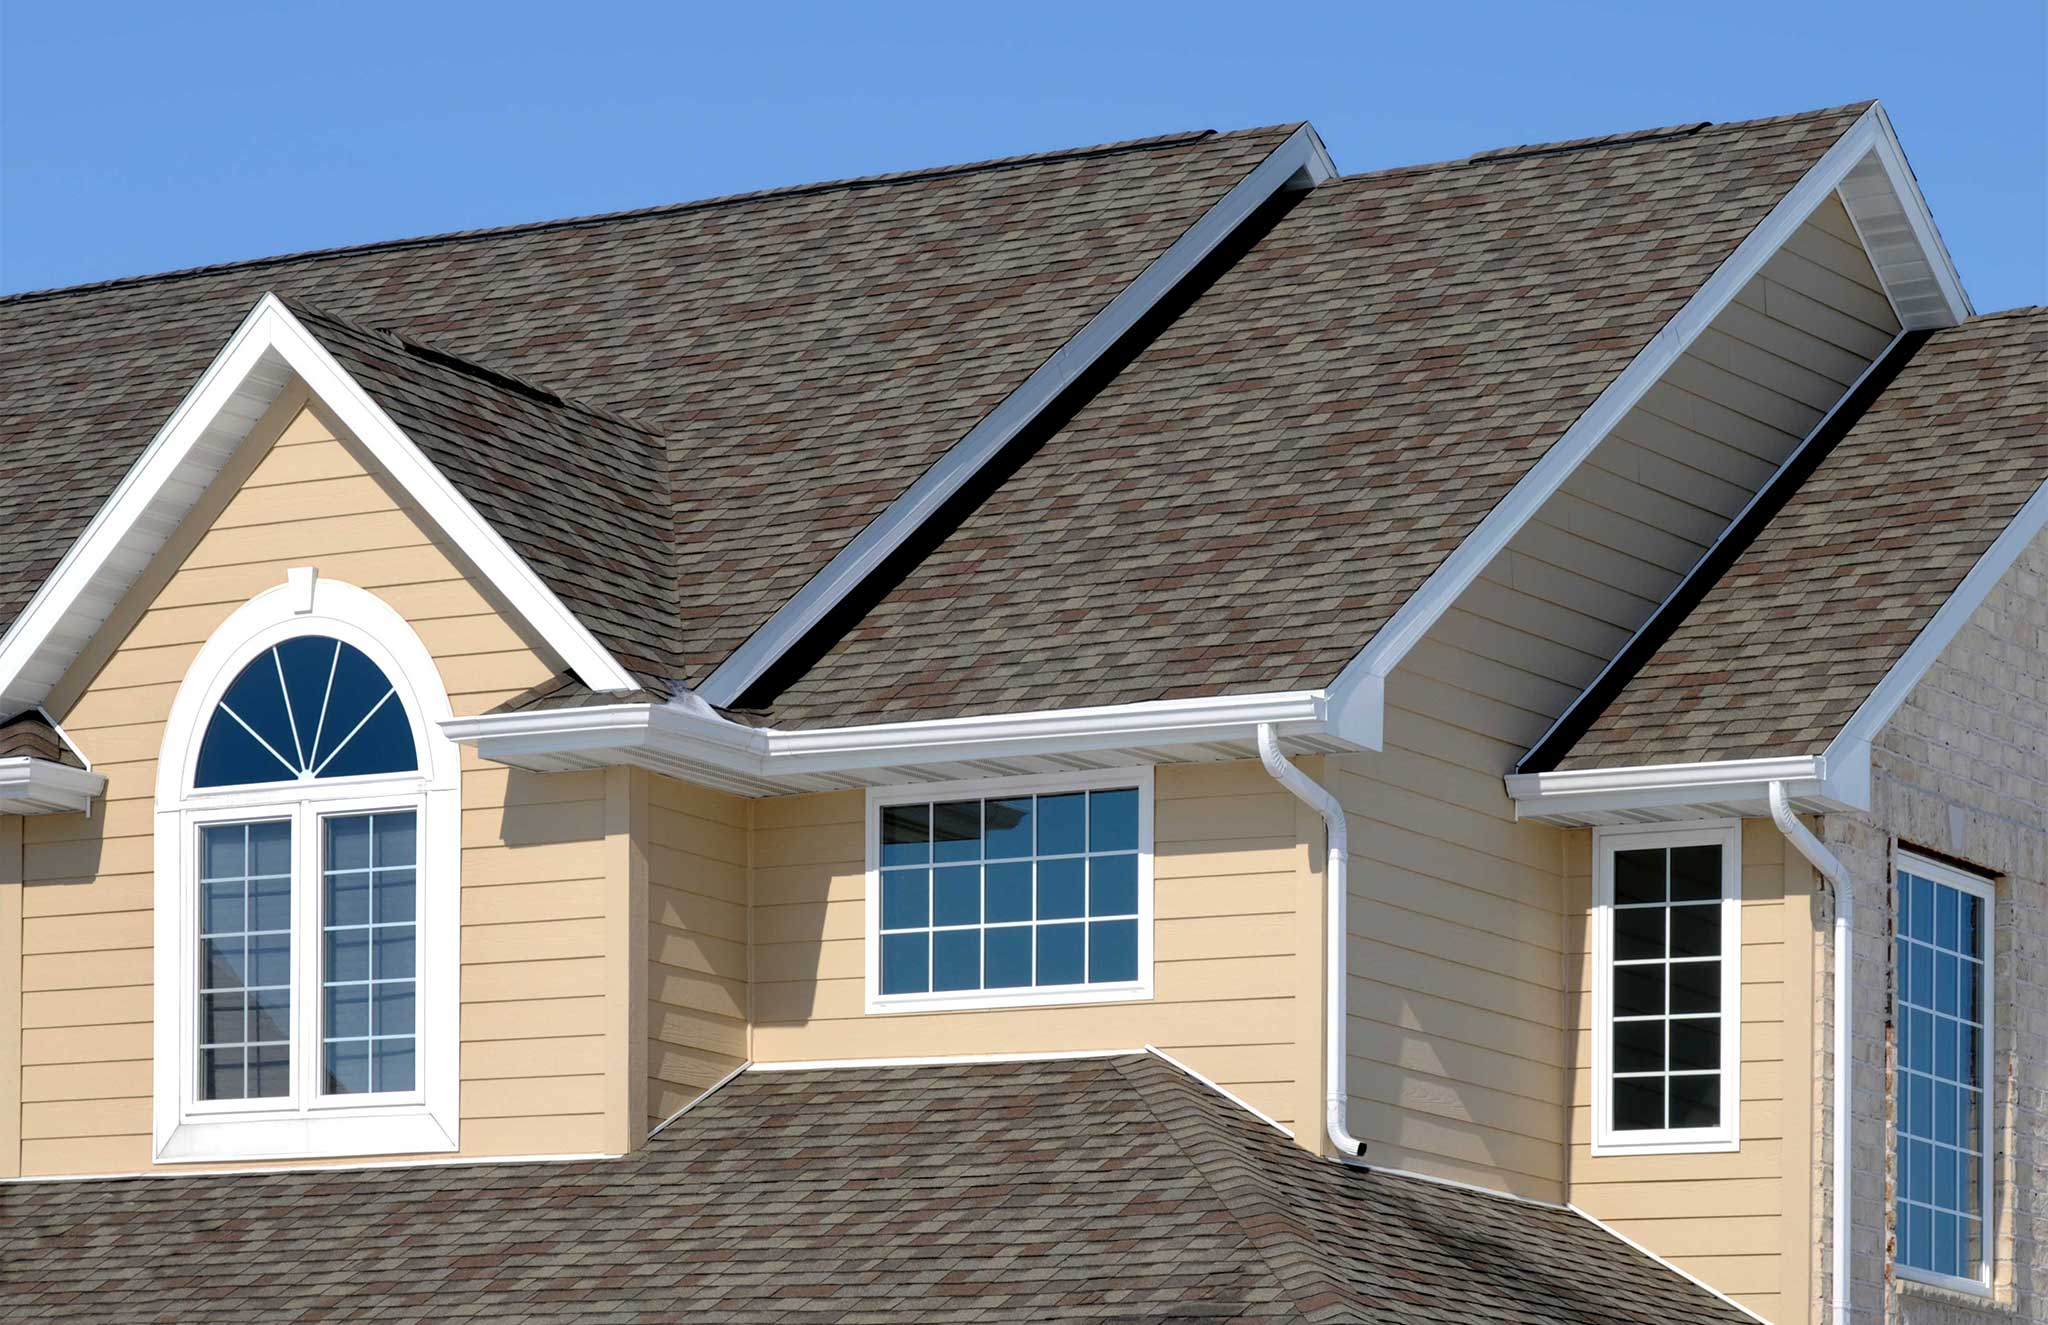 Dedicated Roofing & Exteriors - Professional Roofing Calgary Roof Repair Roof Replacement